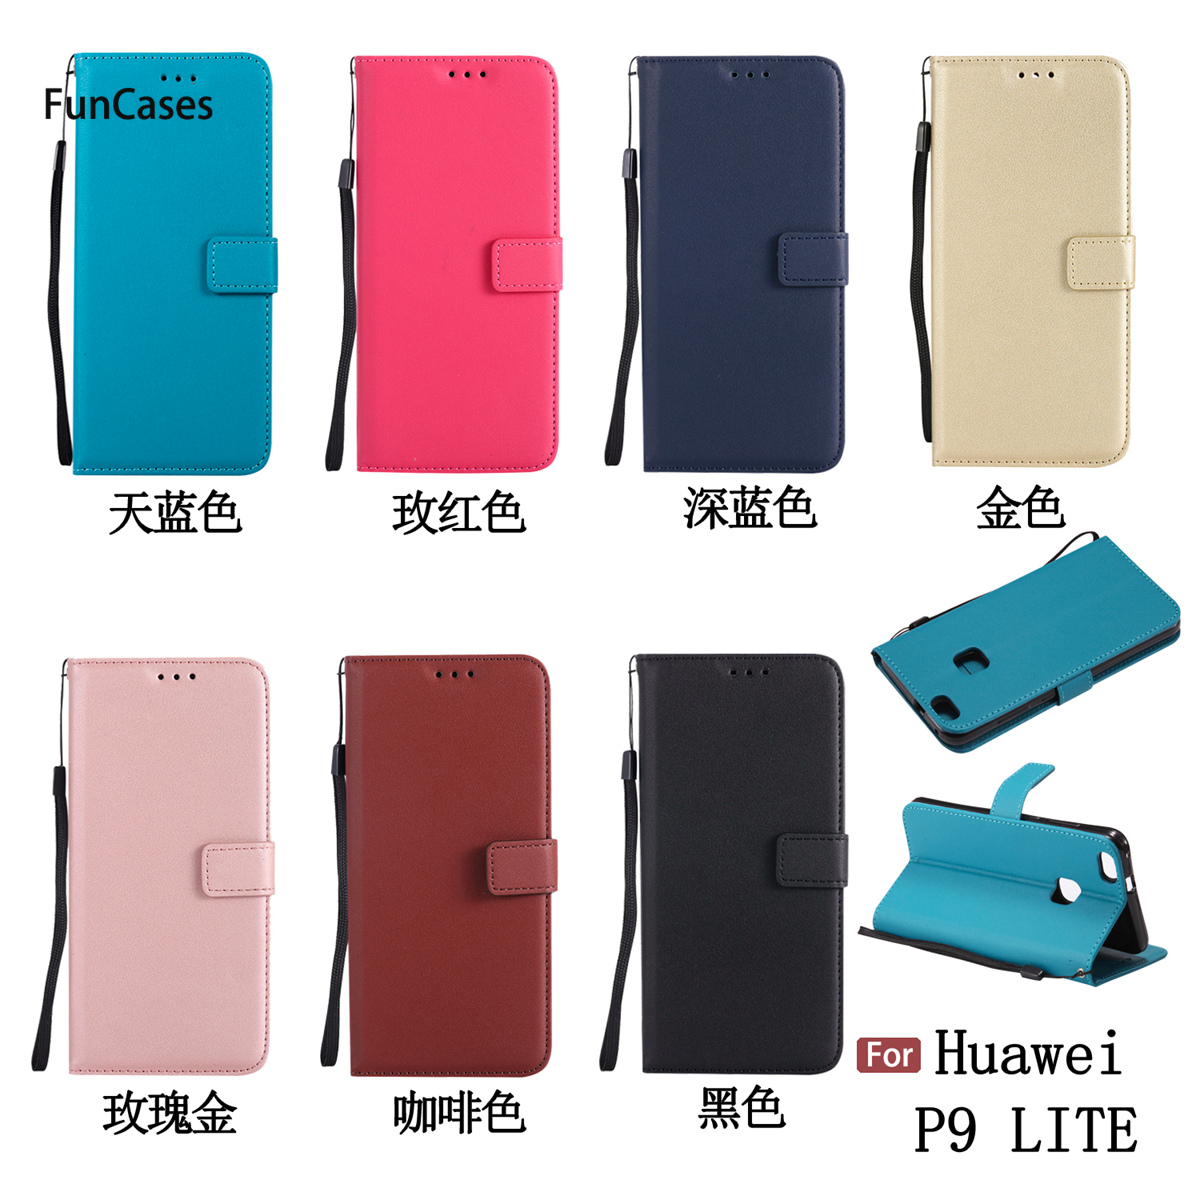 Luxury PU Leather <font><b>Case</b></font> sFor Capinha Huawei P9 Lite Soft Silicone <font><b>Phone</b></font> <font><b>Case</b></font> Shell PU Leather <font><b>Case</b></font> Huawei Ascend P9 Lite 5.2&#8243;